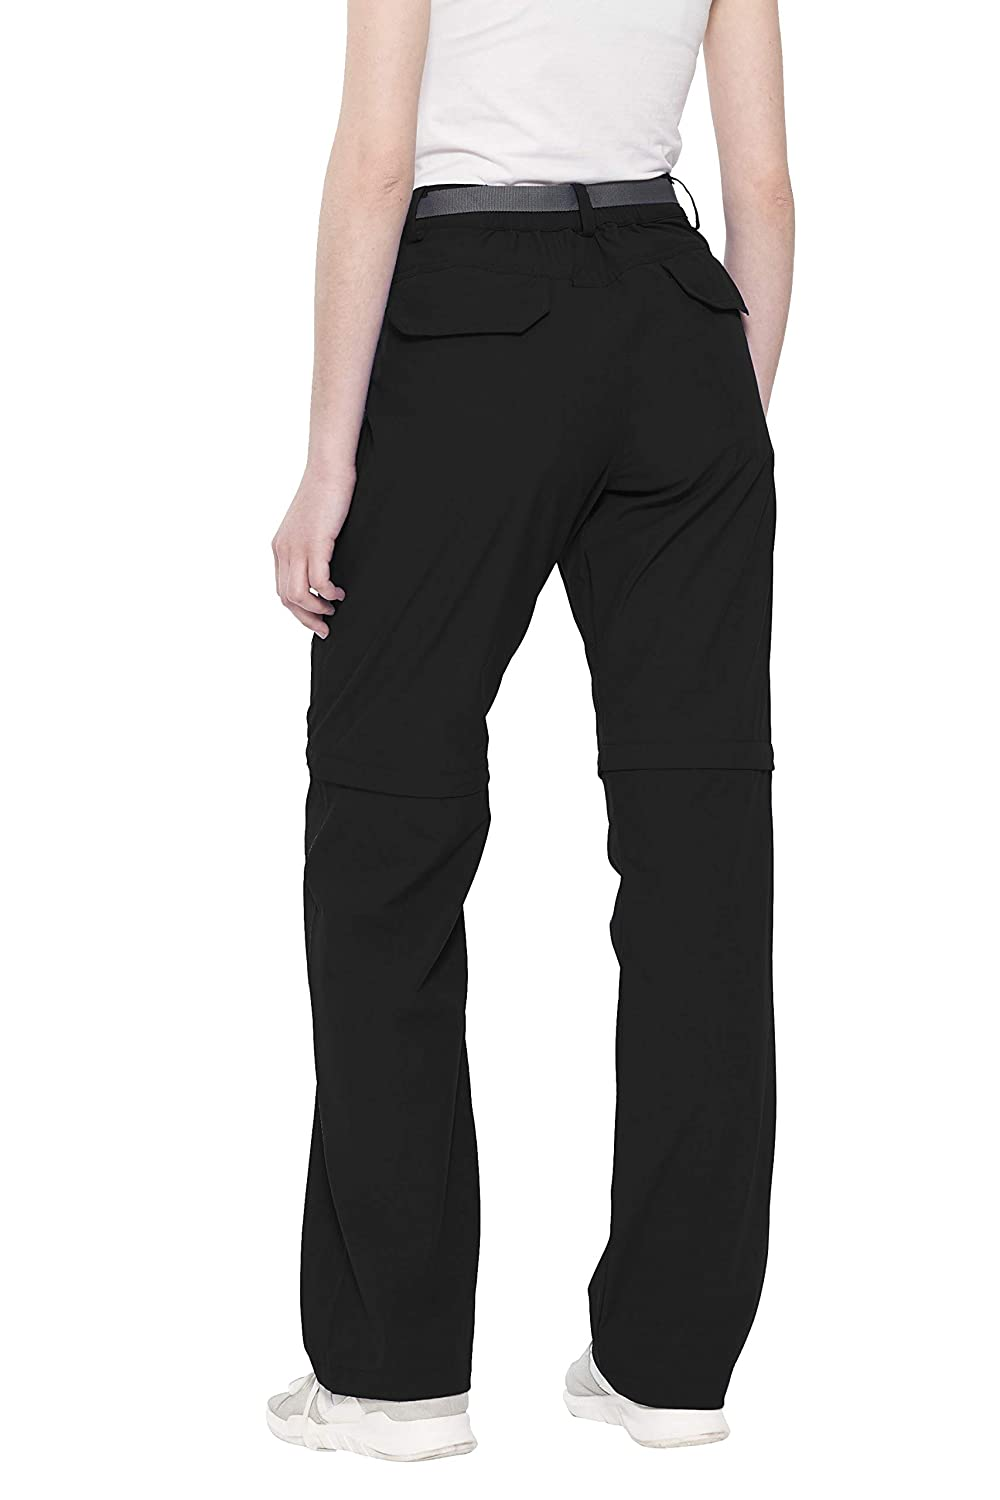 812101b5a824 Amazon.com   Little Donkey Andy Women s Stretch Convertible Pants Zip-Off Quick  Dry Hiking Pants   Sports   Outdoors